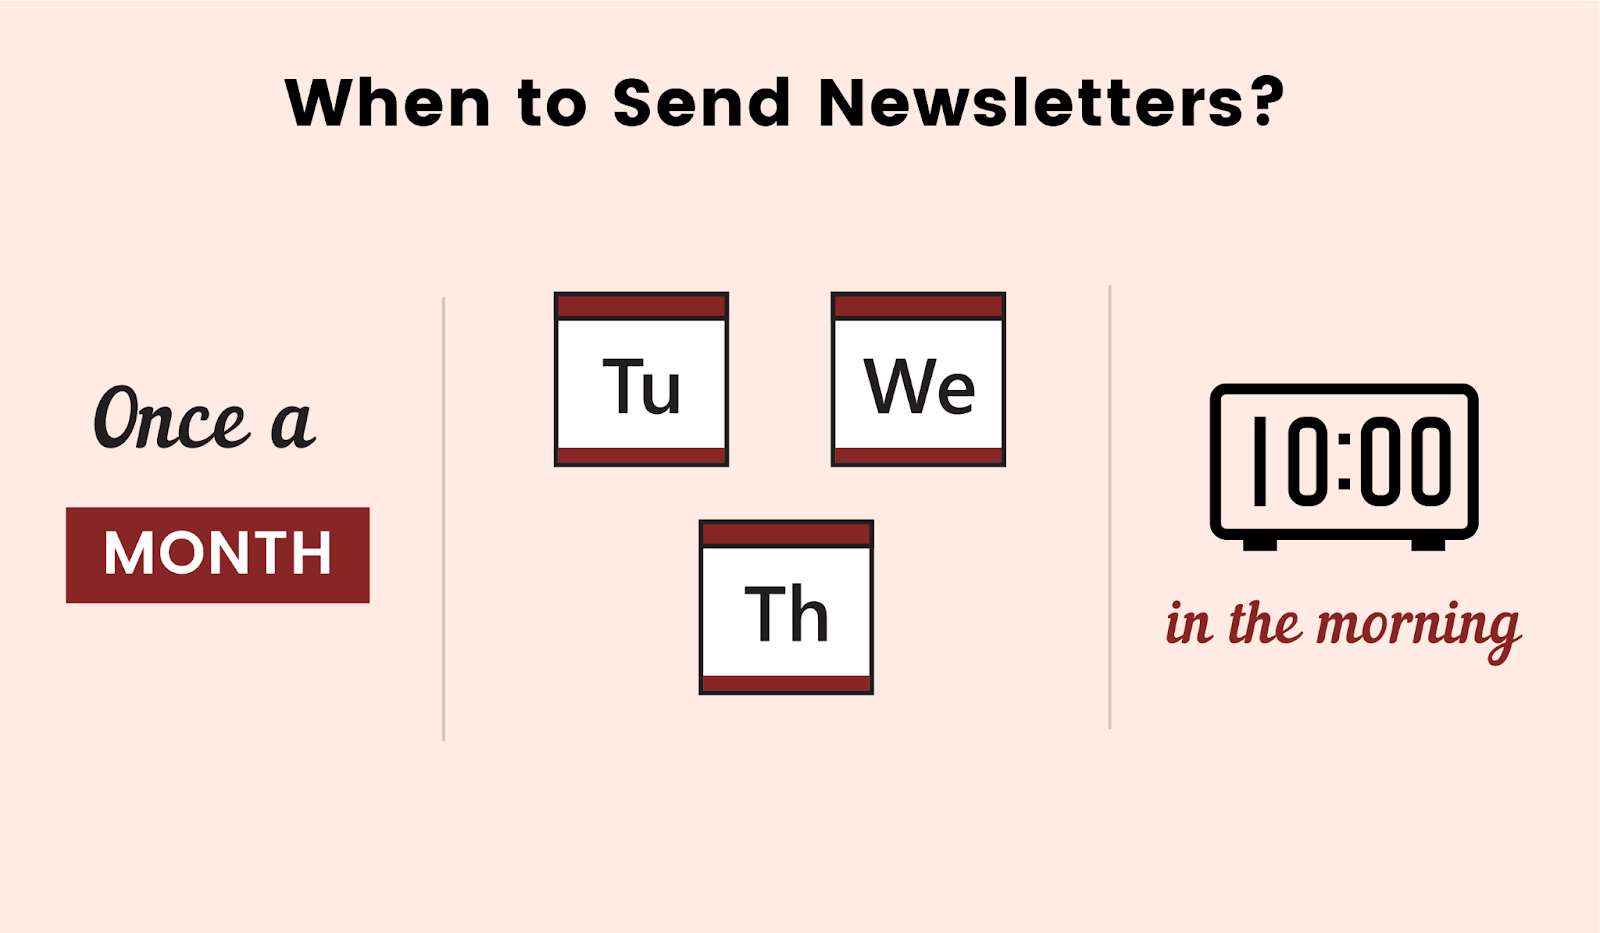 The right frequency, days, and time to send newsletters